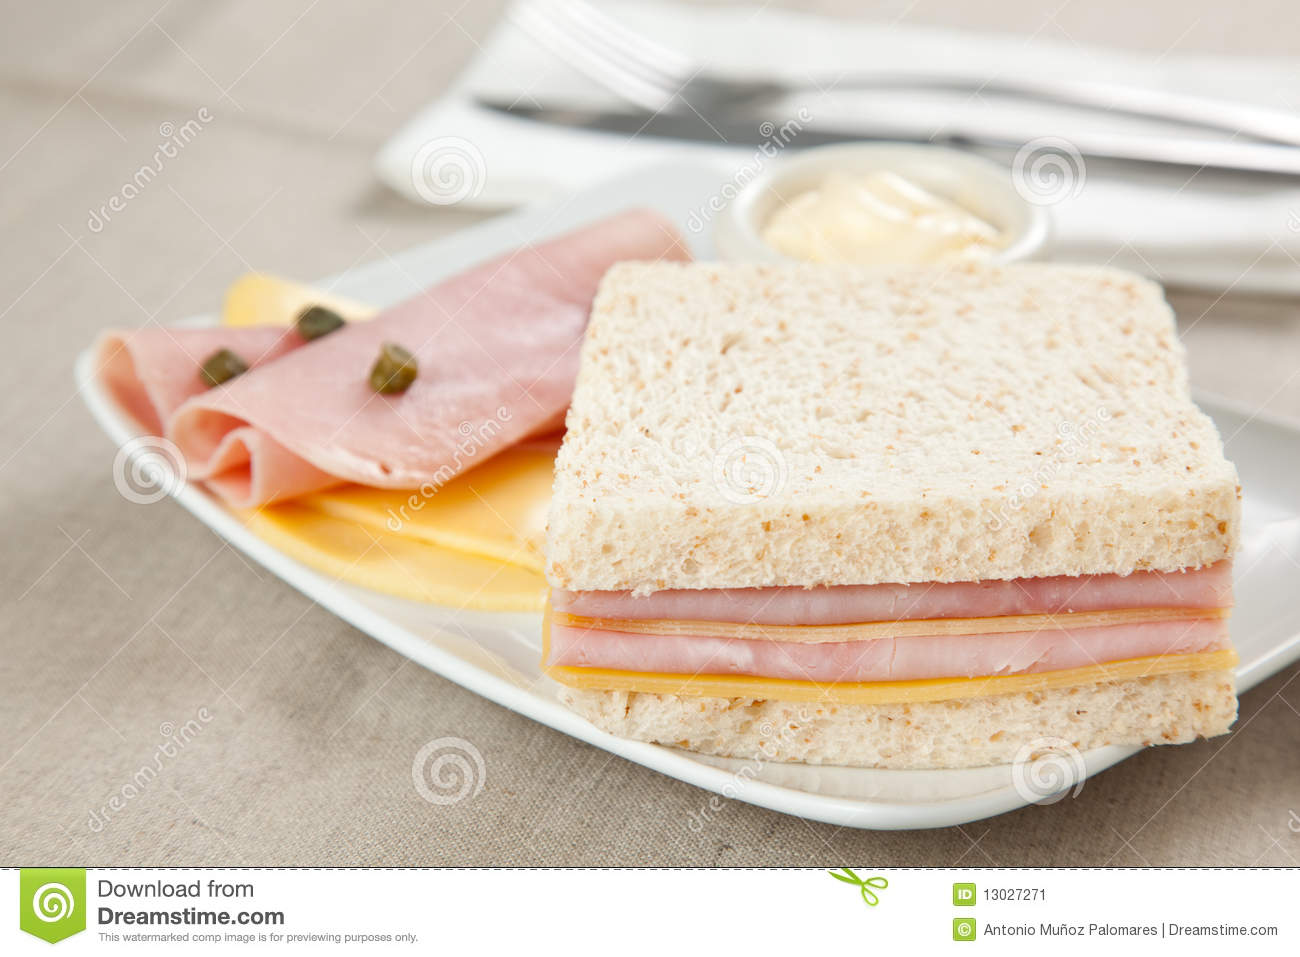 Delicious Ham And Cheese Sandwich Stock Image - Image ...